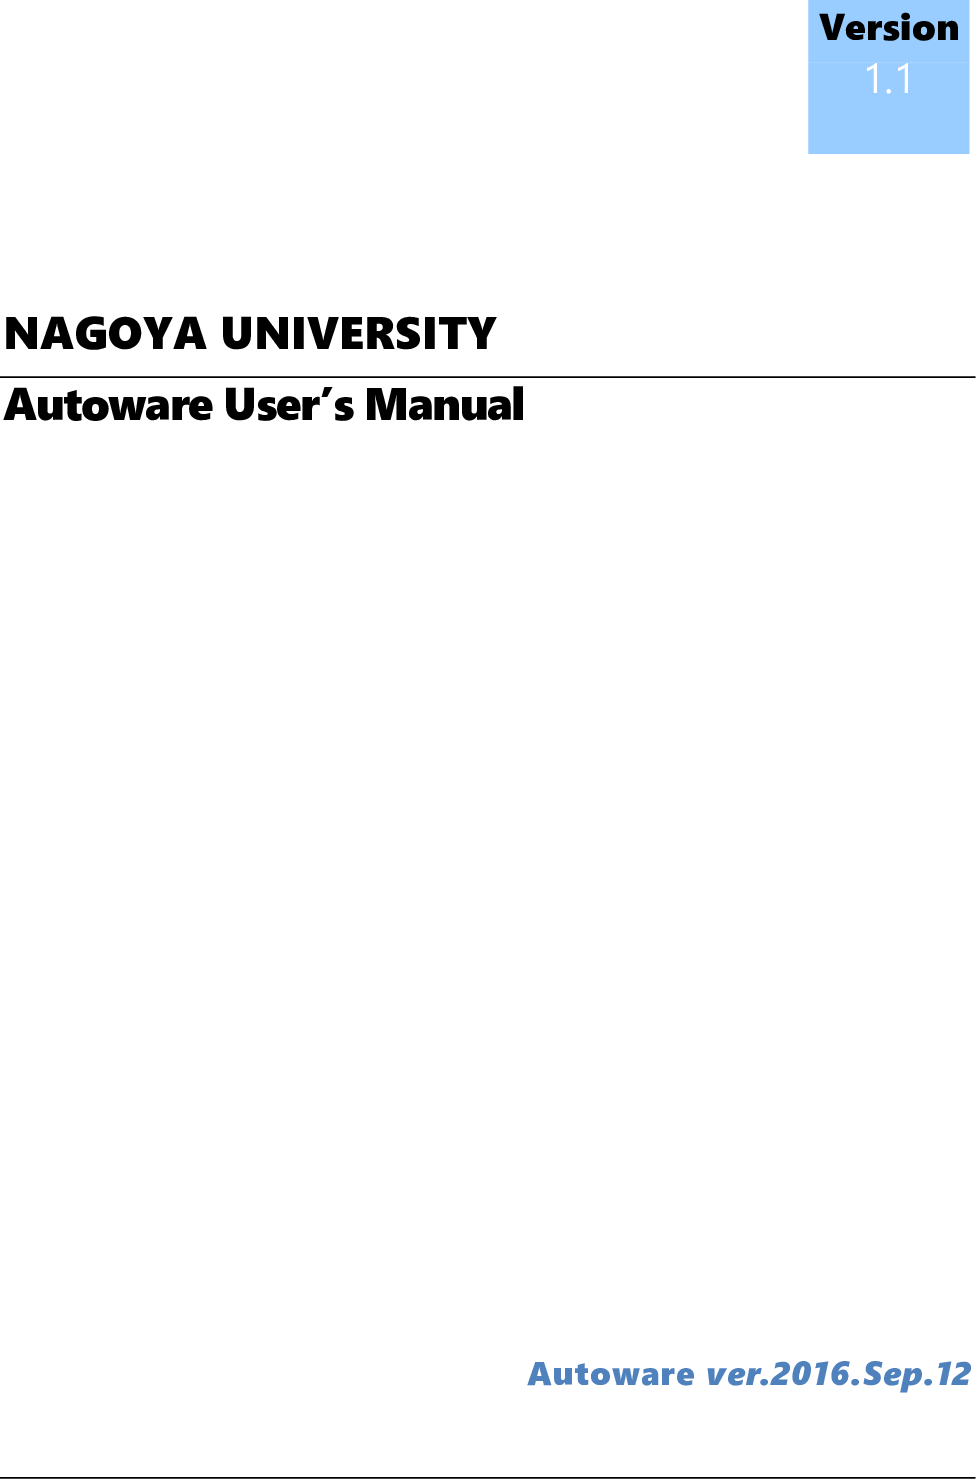 Autoware Users Manual V1.1